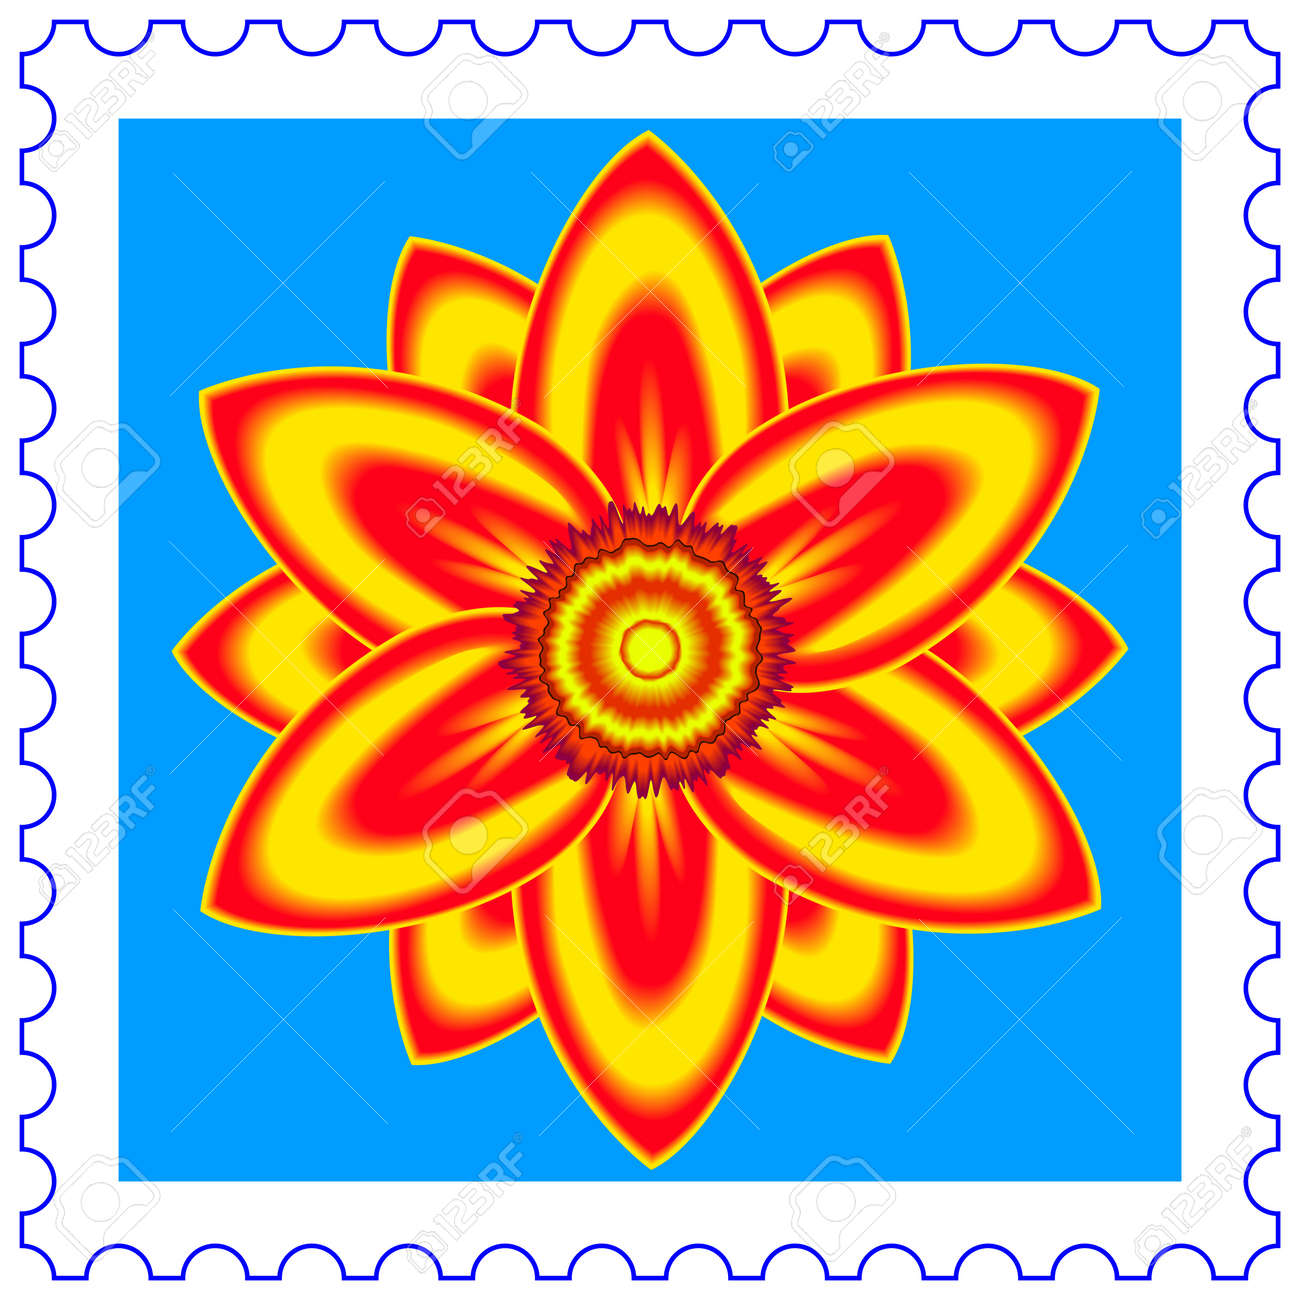 Abstract flower on a postage stamp Stock Vector - 19615300